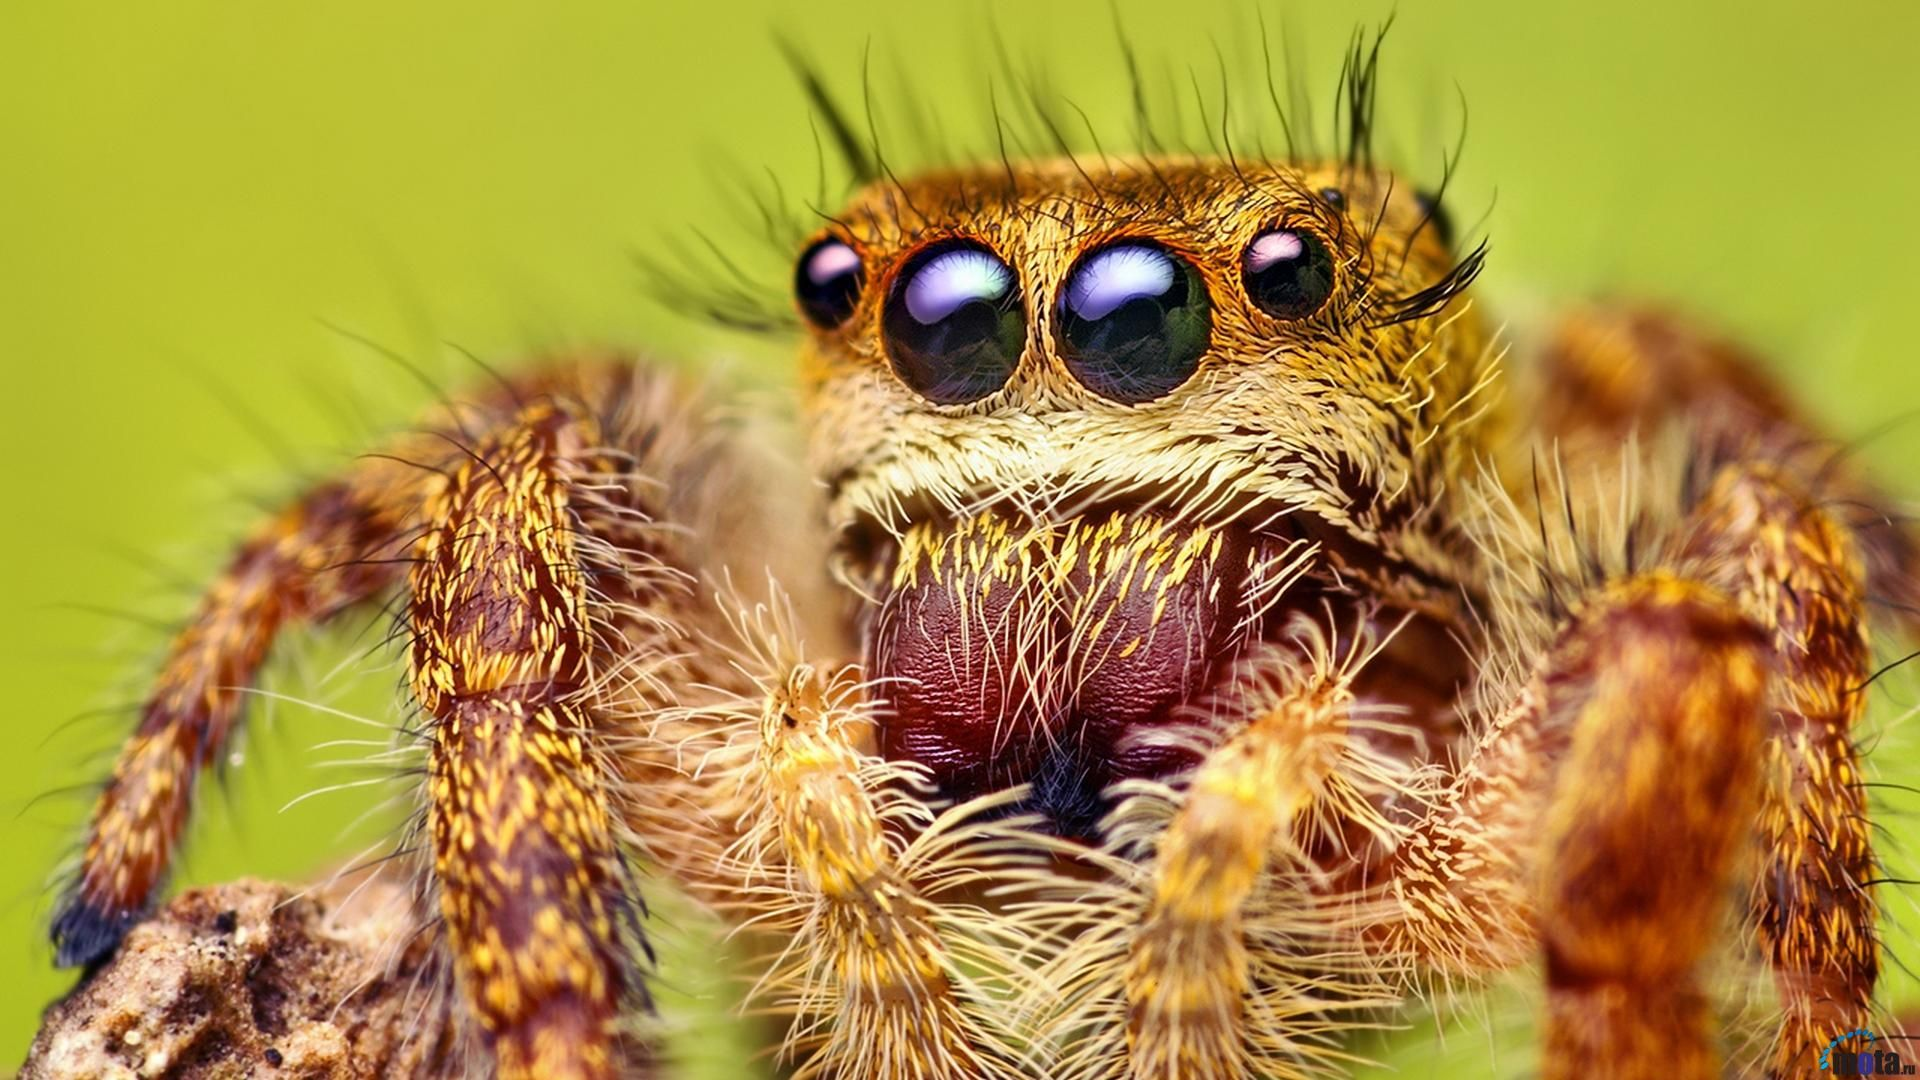 Cute jumping spider - photo#18